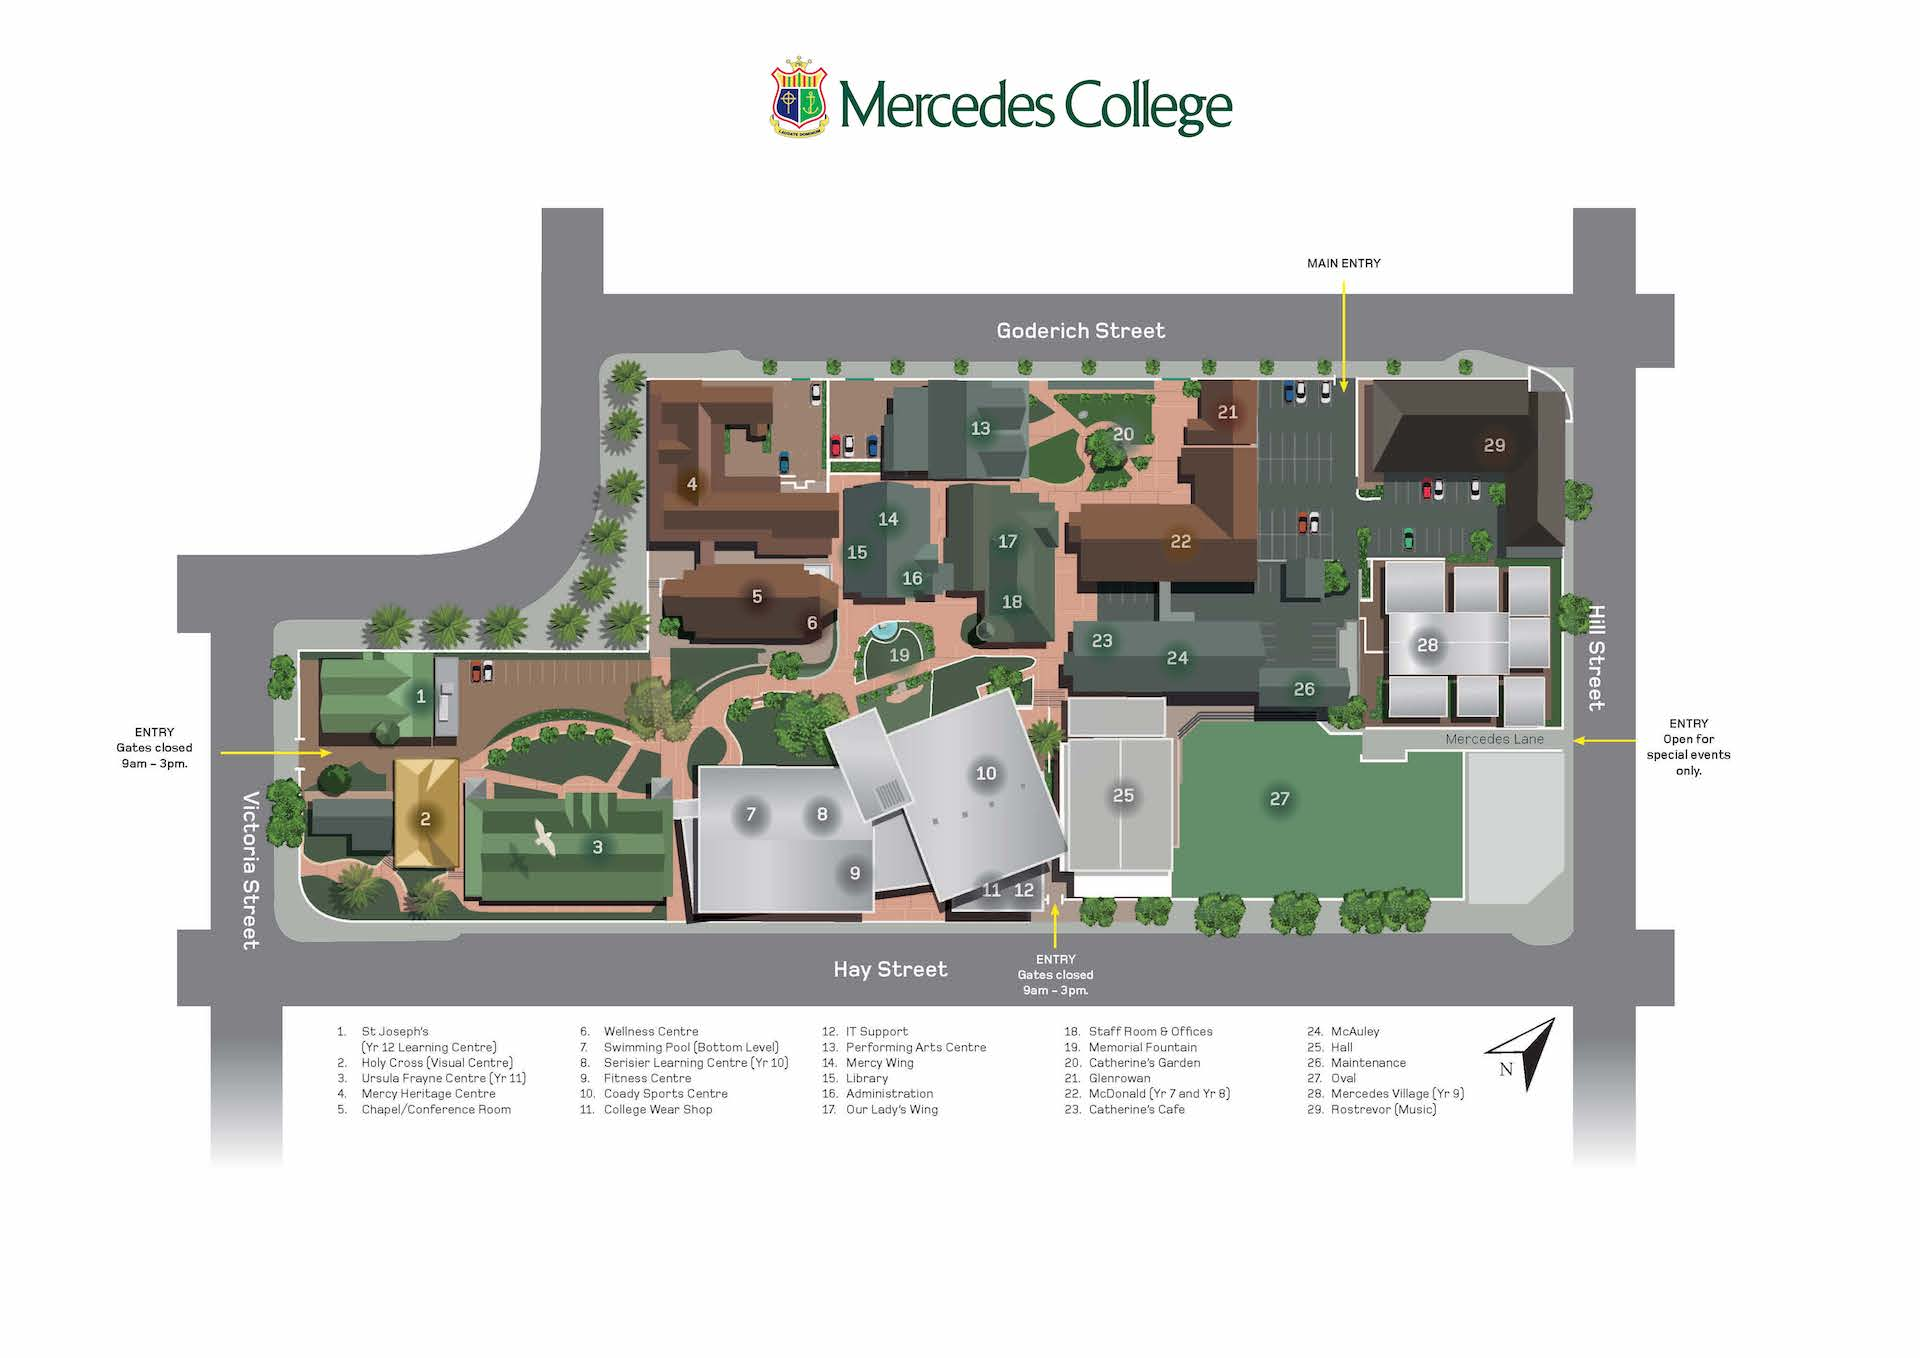 Mercedes College Map